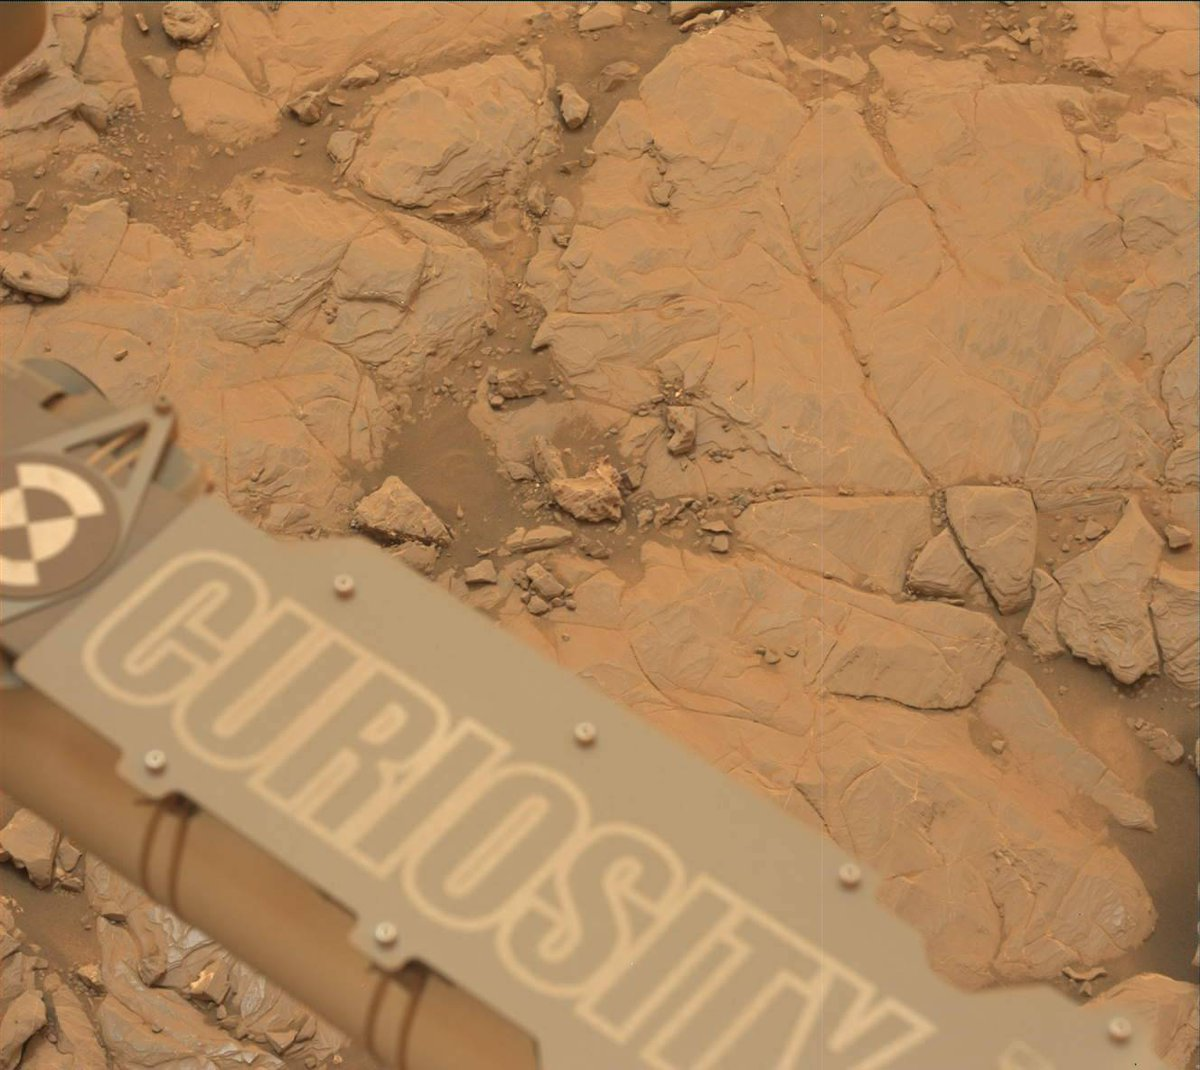 I touched down on #Mars six years ago. Celebrating my 6th landing anniversary with the traditional gift of iron… oxide. (It puts the red in Red Planet.) https://t.co/AgssRU46yh